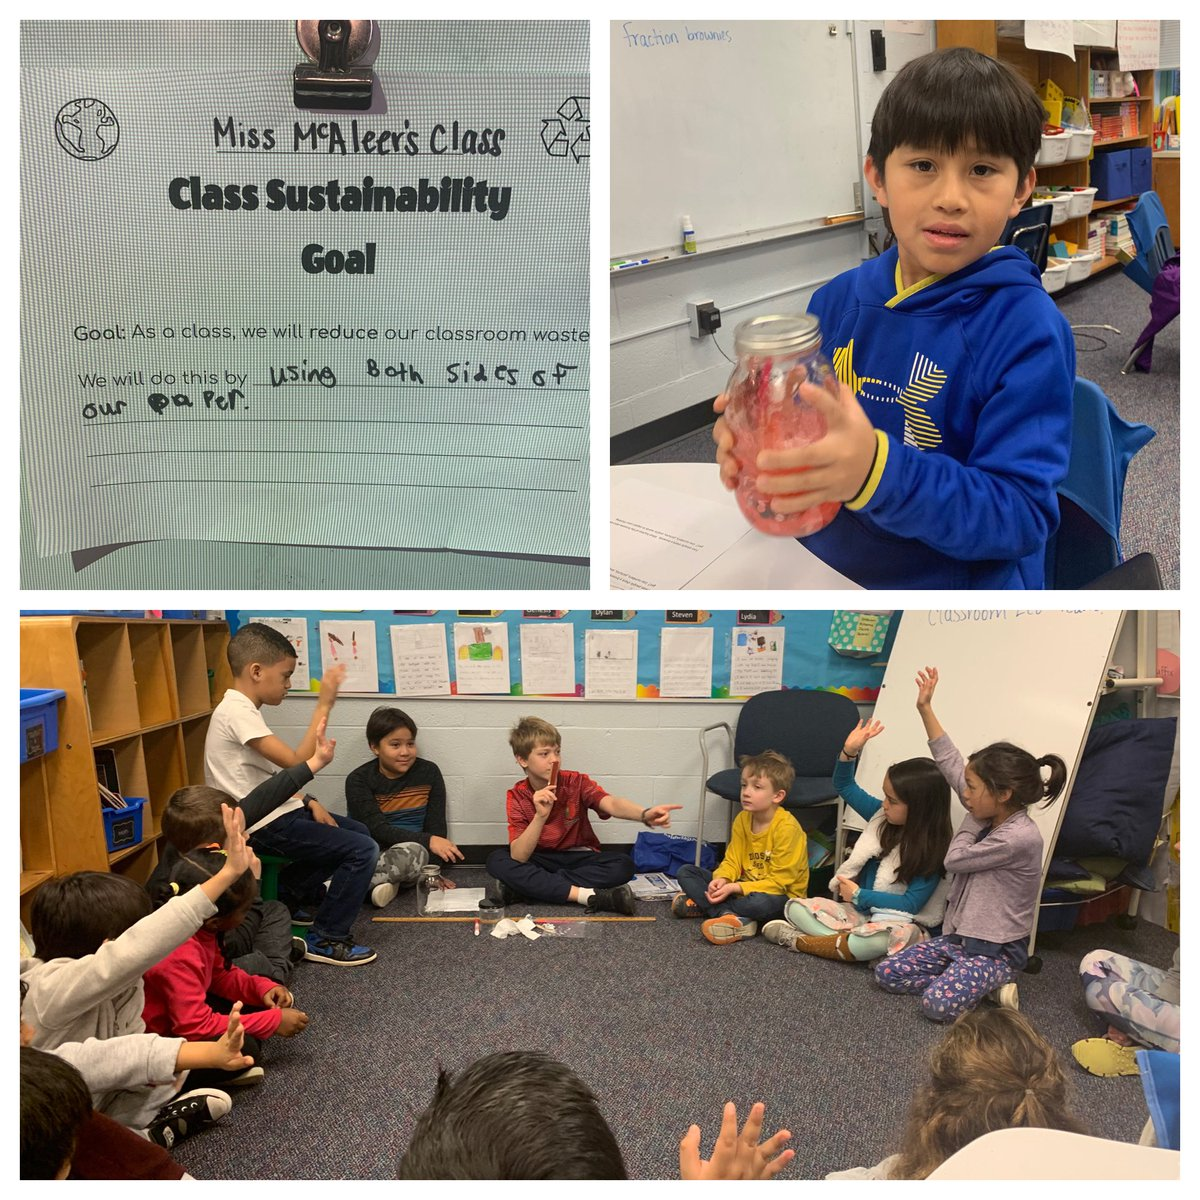 The ECO Team joined us for morning meeting and we learned so much about waste. They helped us set a goal for our classroom to cut down on waste throughout each day! <a target='_blank' href='http://twitter.com/CampbellAPS'>@CampbellAPS</a> <a target='_blank' href='https://t.co/215YvuejMT'>https://t.co/215YvuejMT</a>